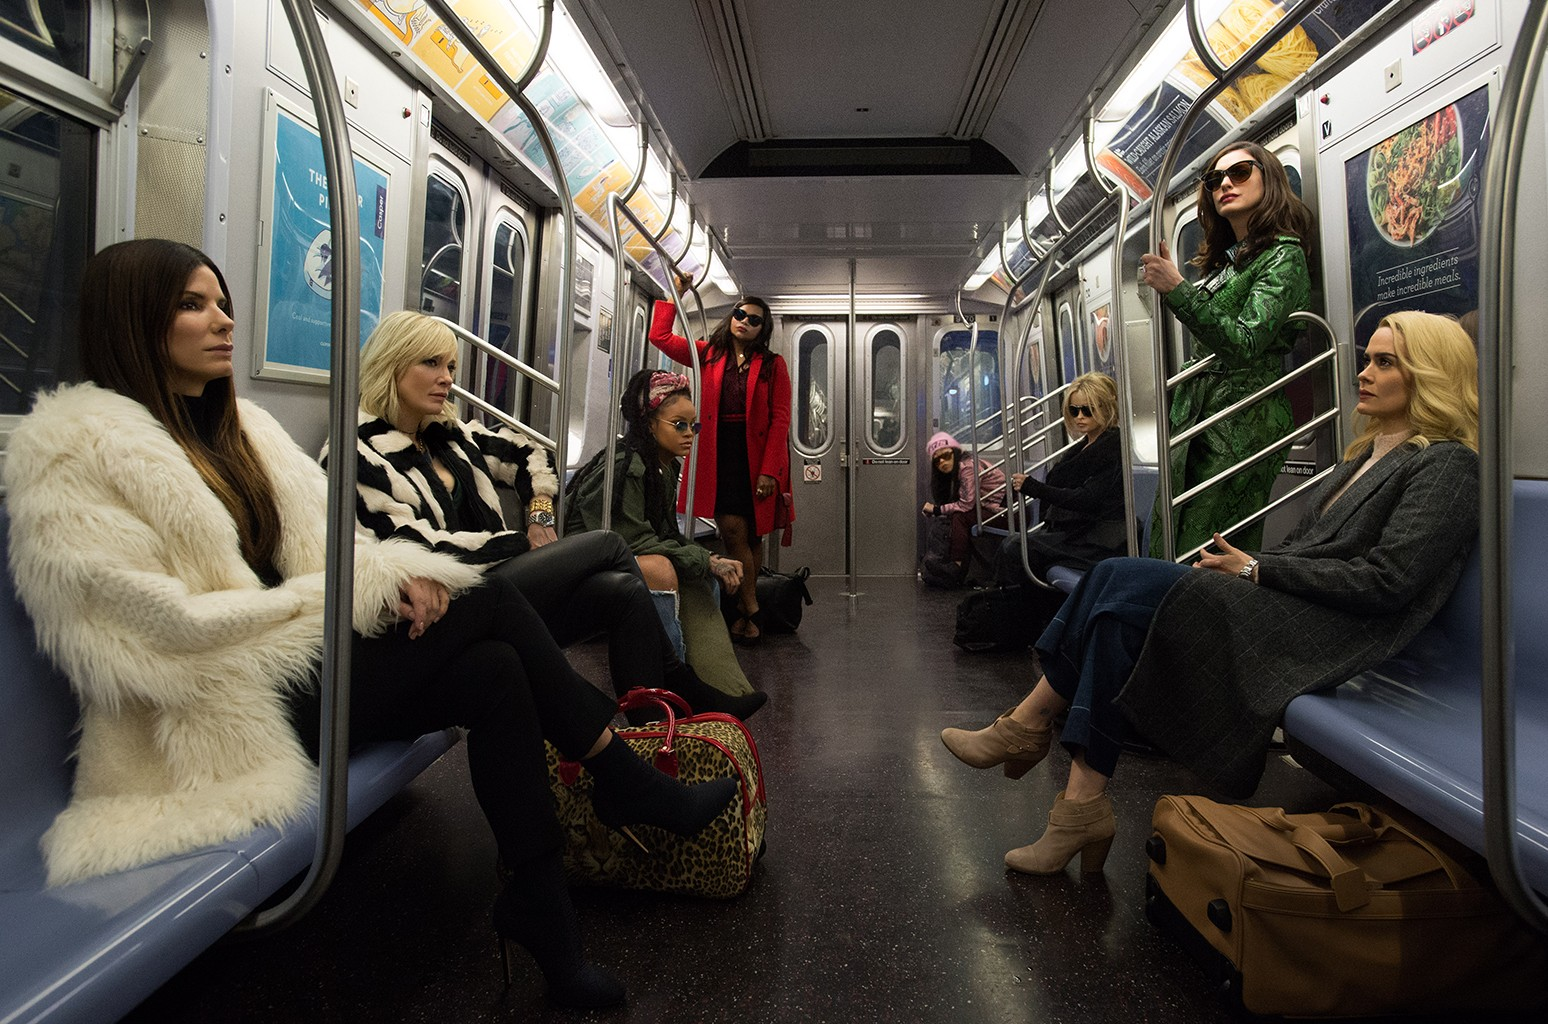 The cast of Ocean's 8